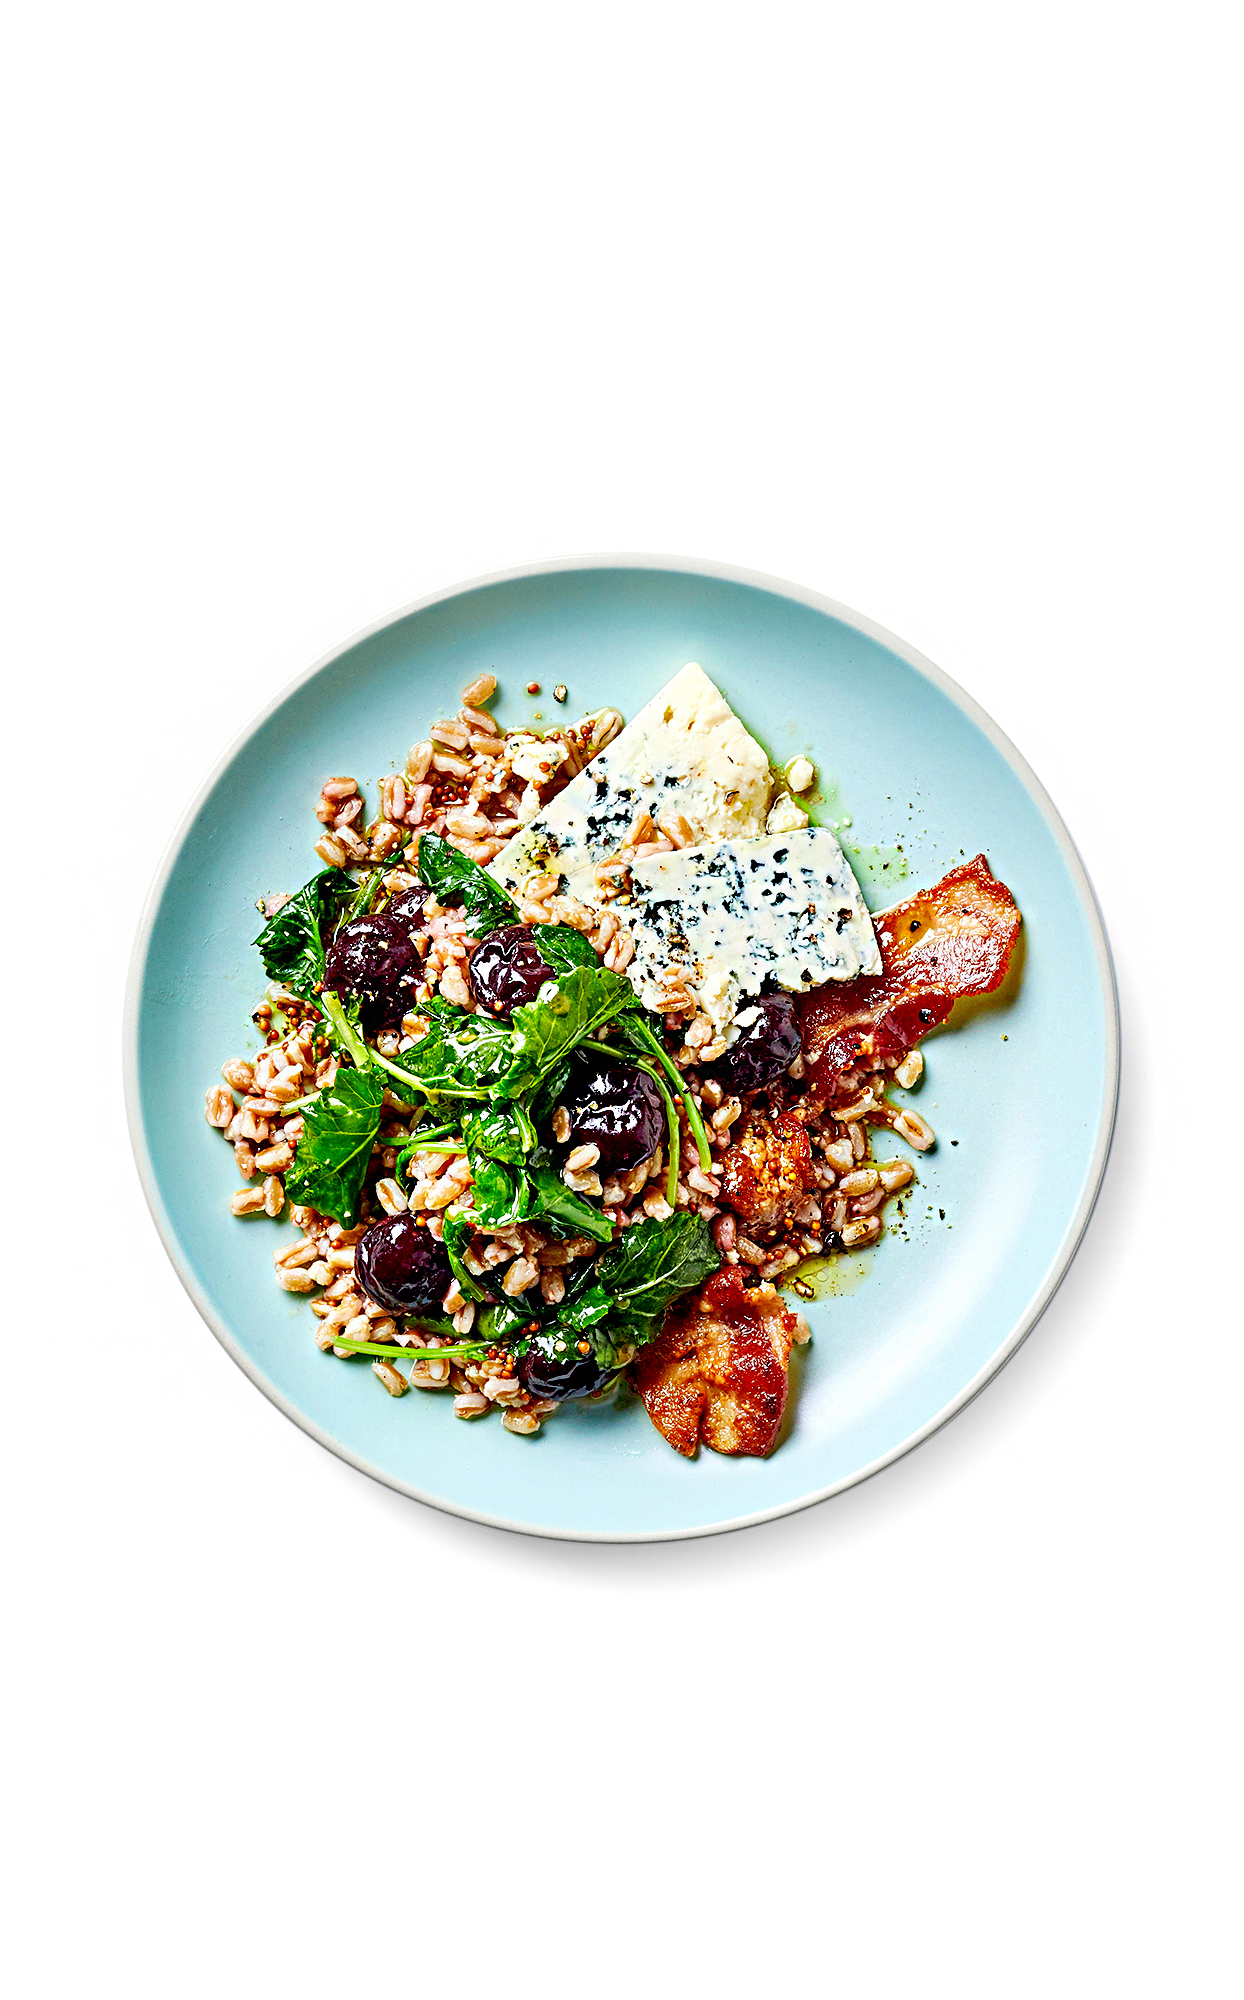 Grain Salad with Greens, Cherries, and Crispy Bacon